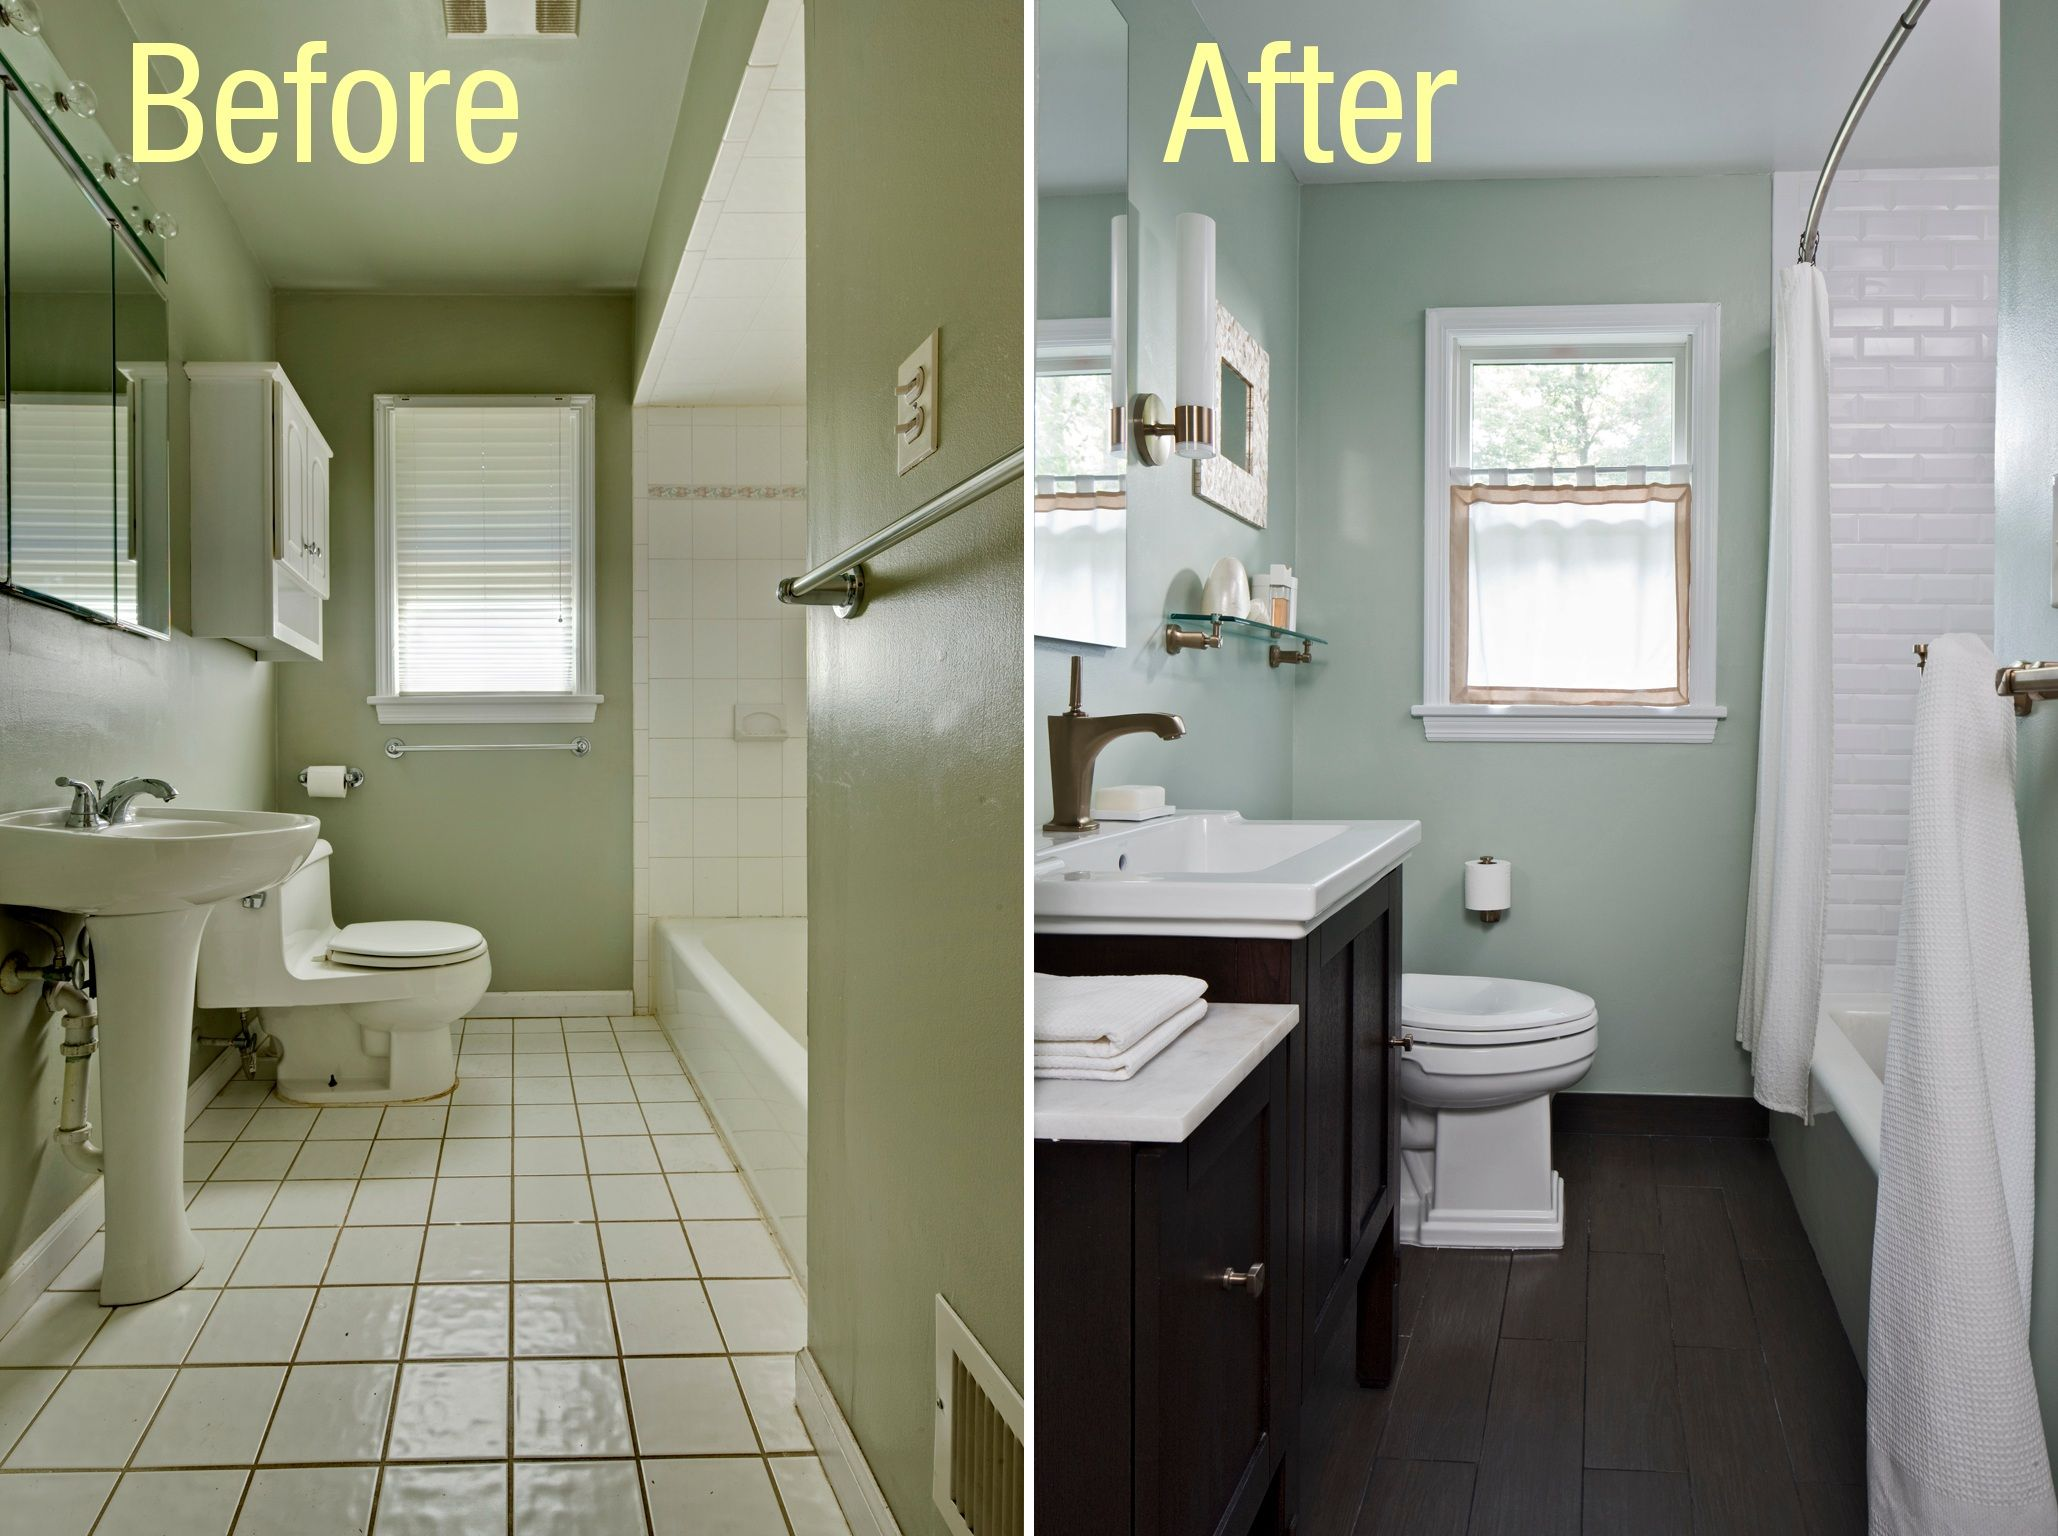 Attractive Bathroom Design Bathroom Vanities Before And After Photos Of Bathroom  Renovations From Old Simple To New Elegant Trend One Bathroom Makeovers On  A Budget ...